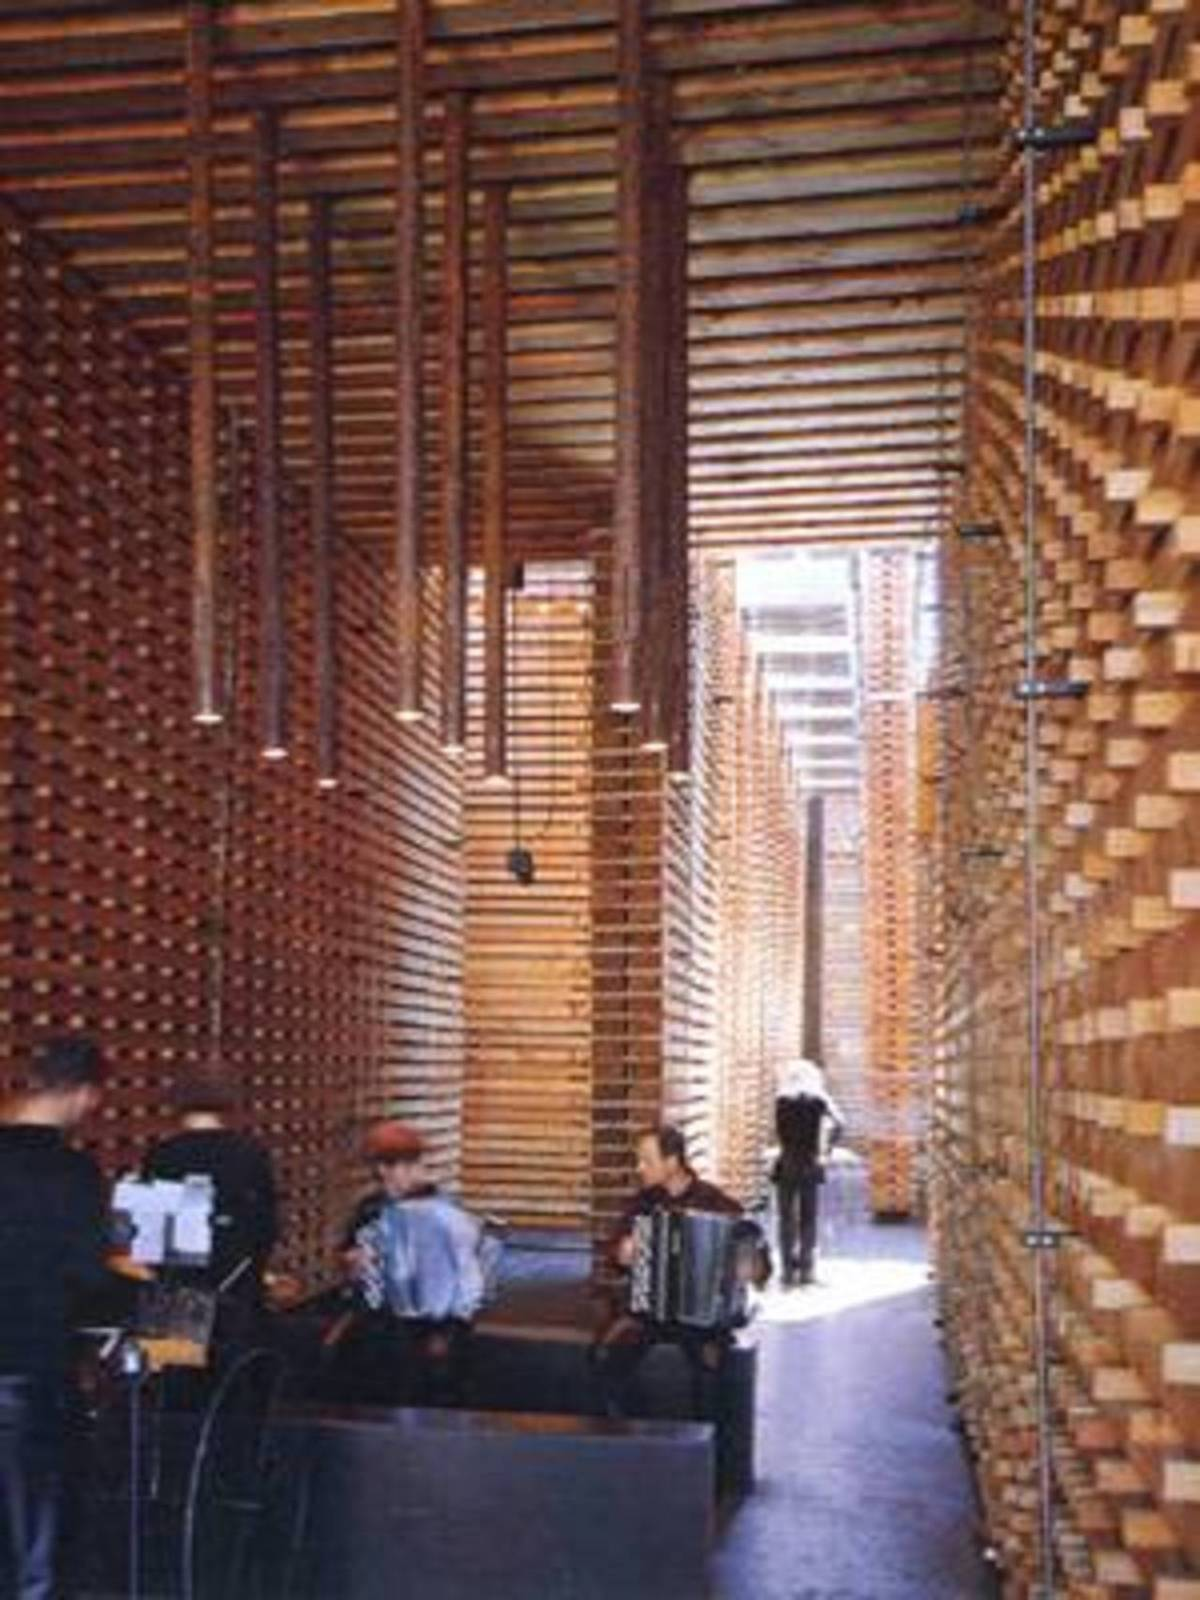 P. Zumthor Swiss Pavilion at Expo 2000 in Hanover